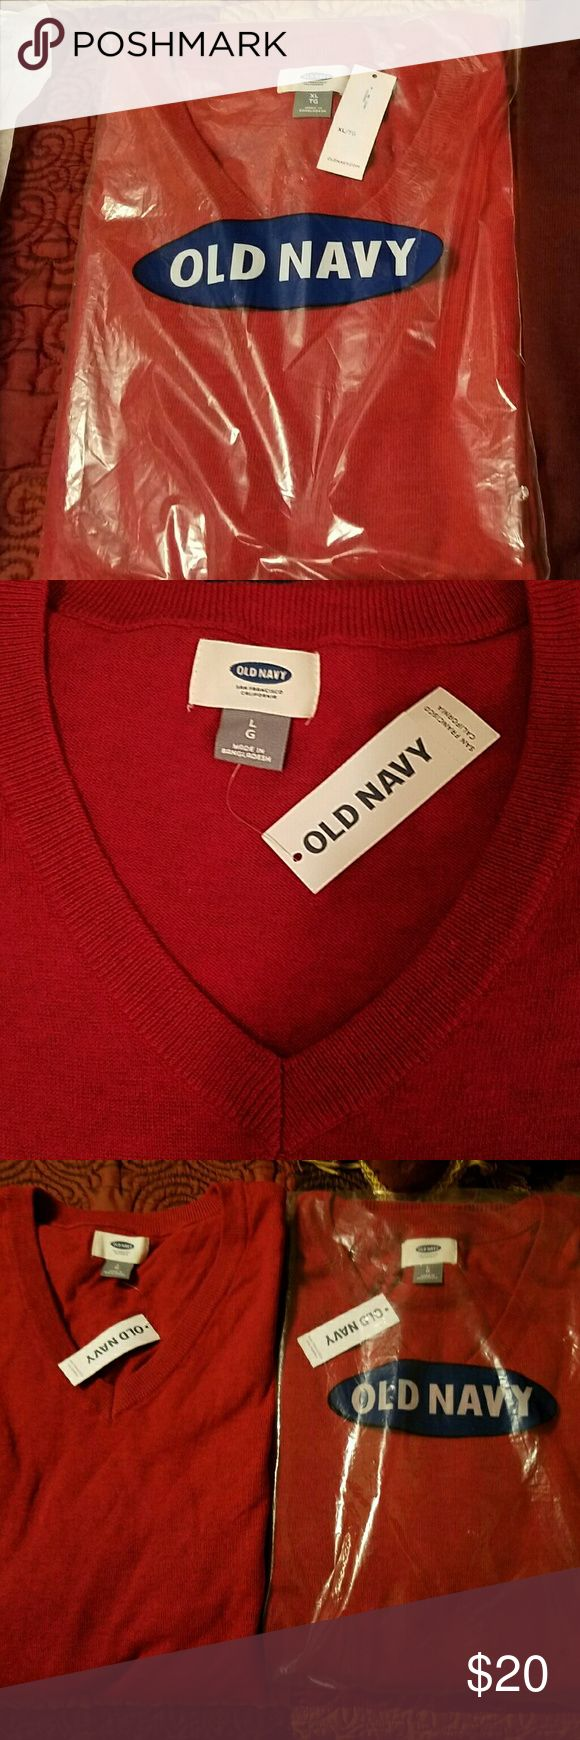 Old Navy Men's Sweater NWT Old navy sweater men's V- Neck style size large NWT Old Navy Shirts Sweatshirts & Hoodies